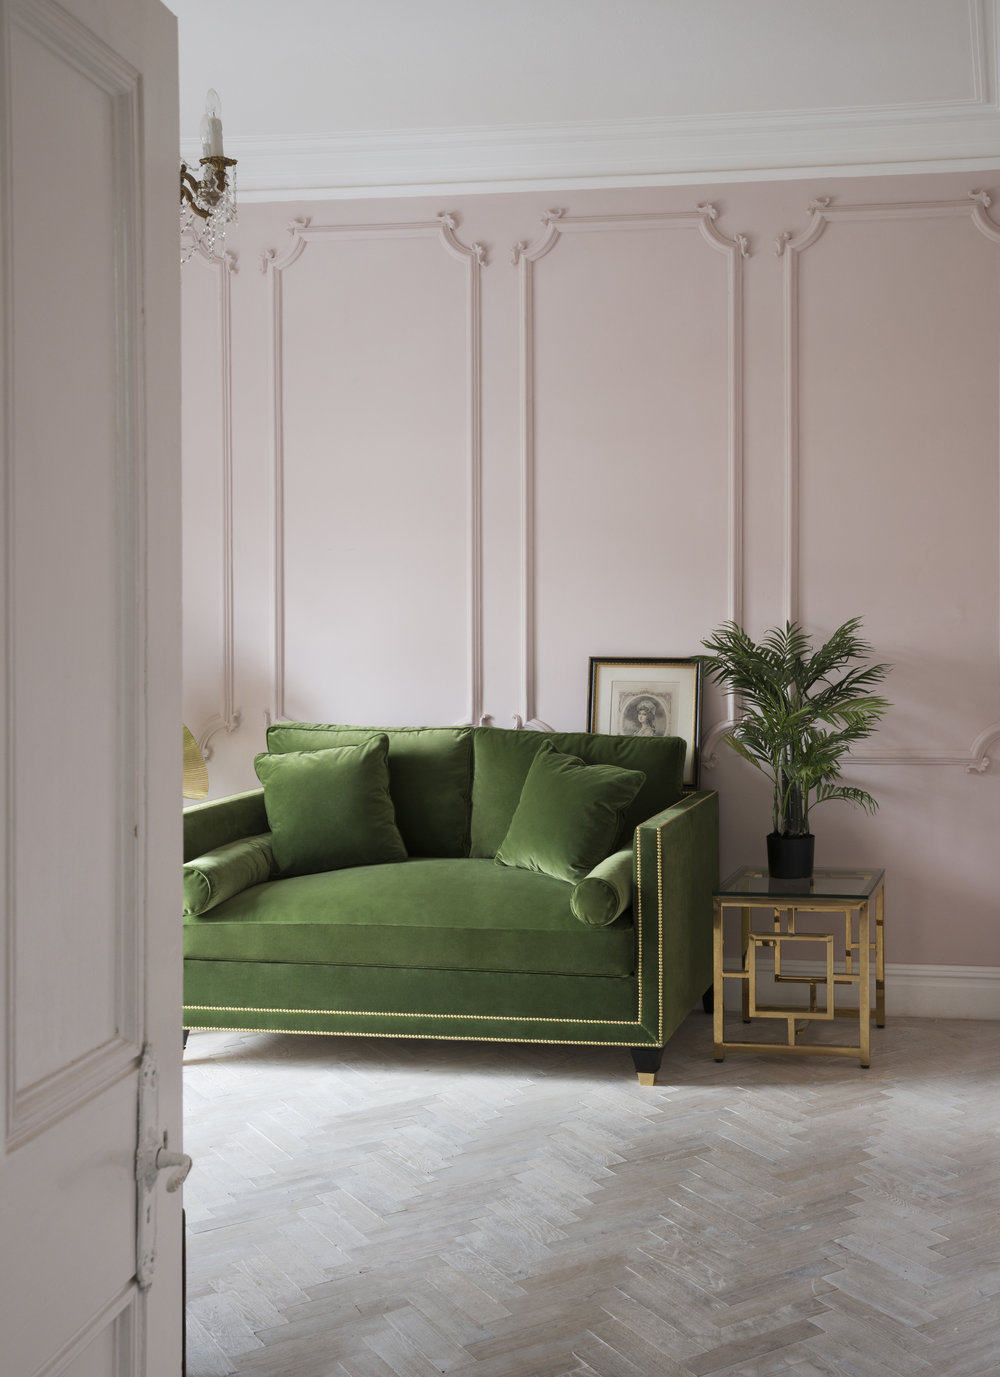 Hatfield Grass Sofa copy.jpg